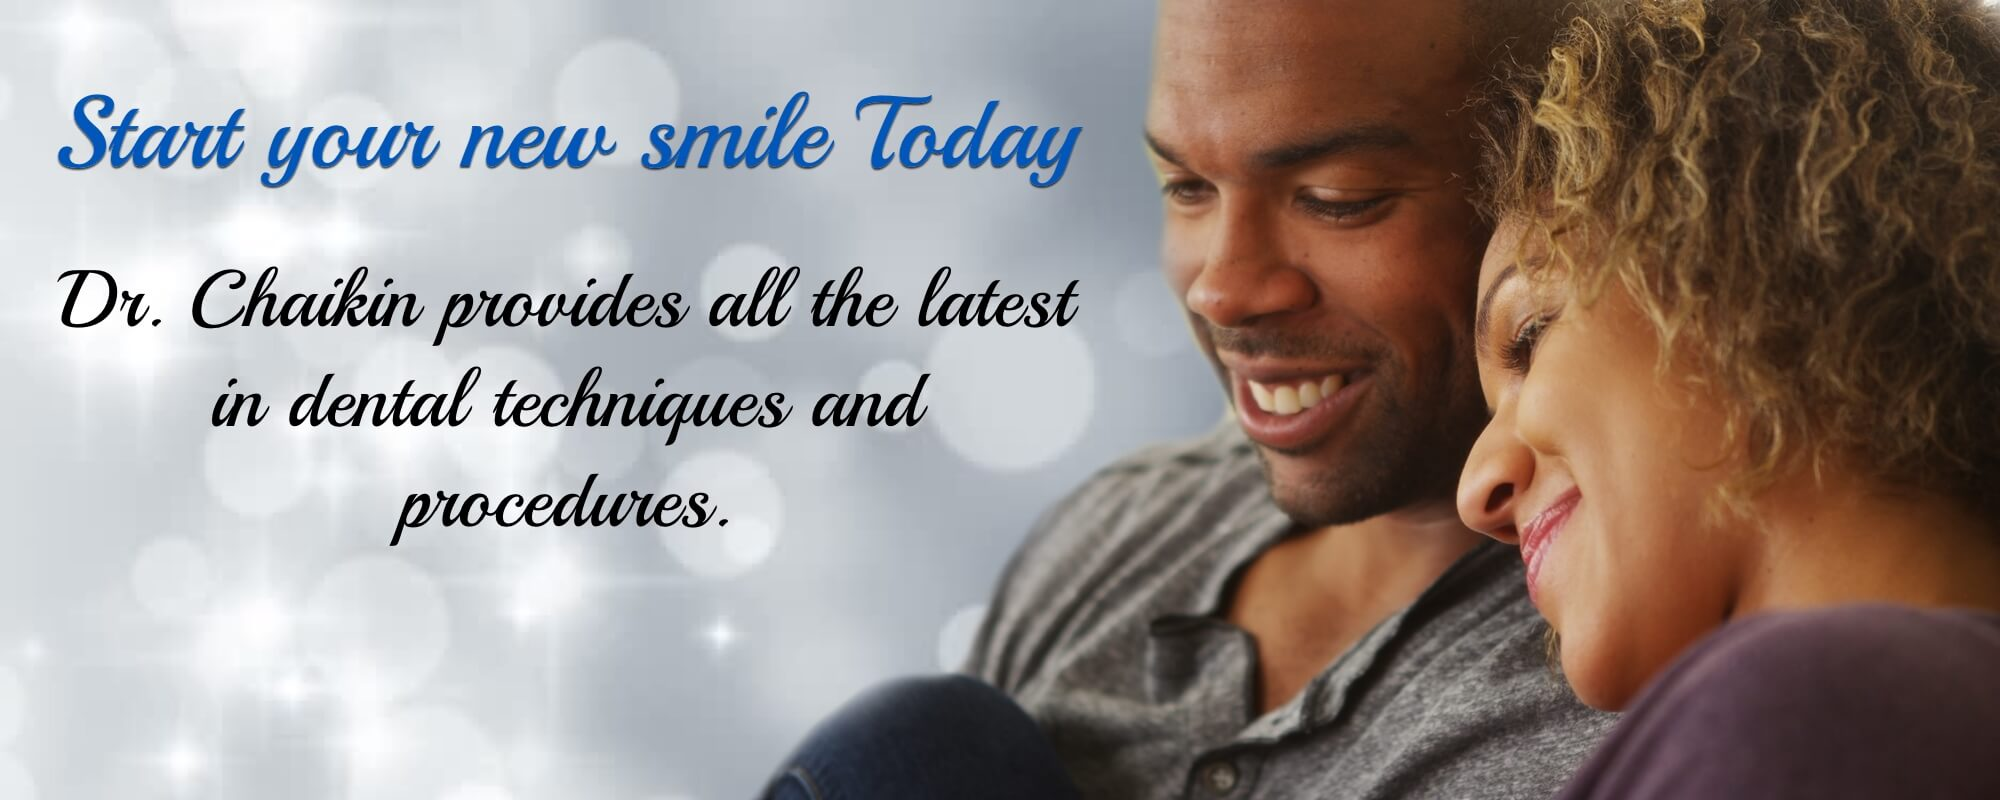 Start your new smile today at Convoy Dental Arts in Sand Diego